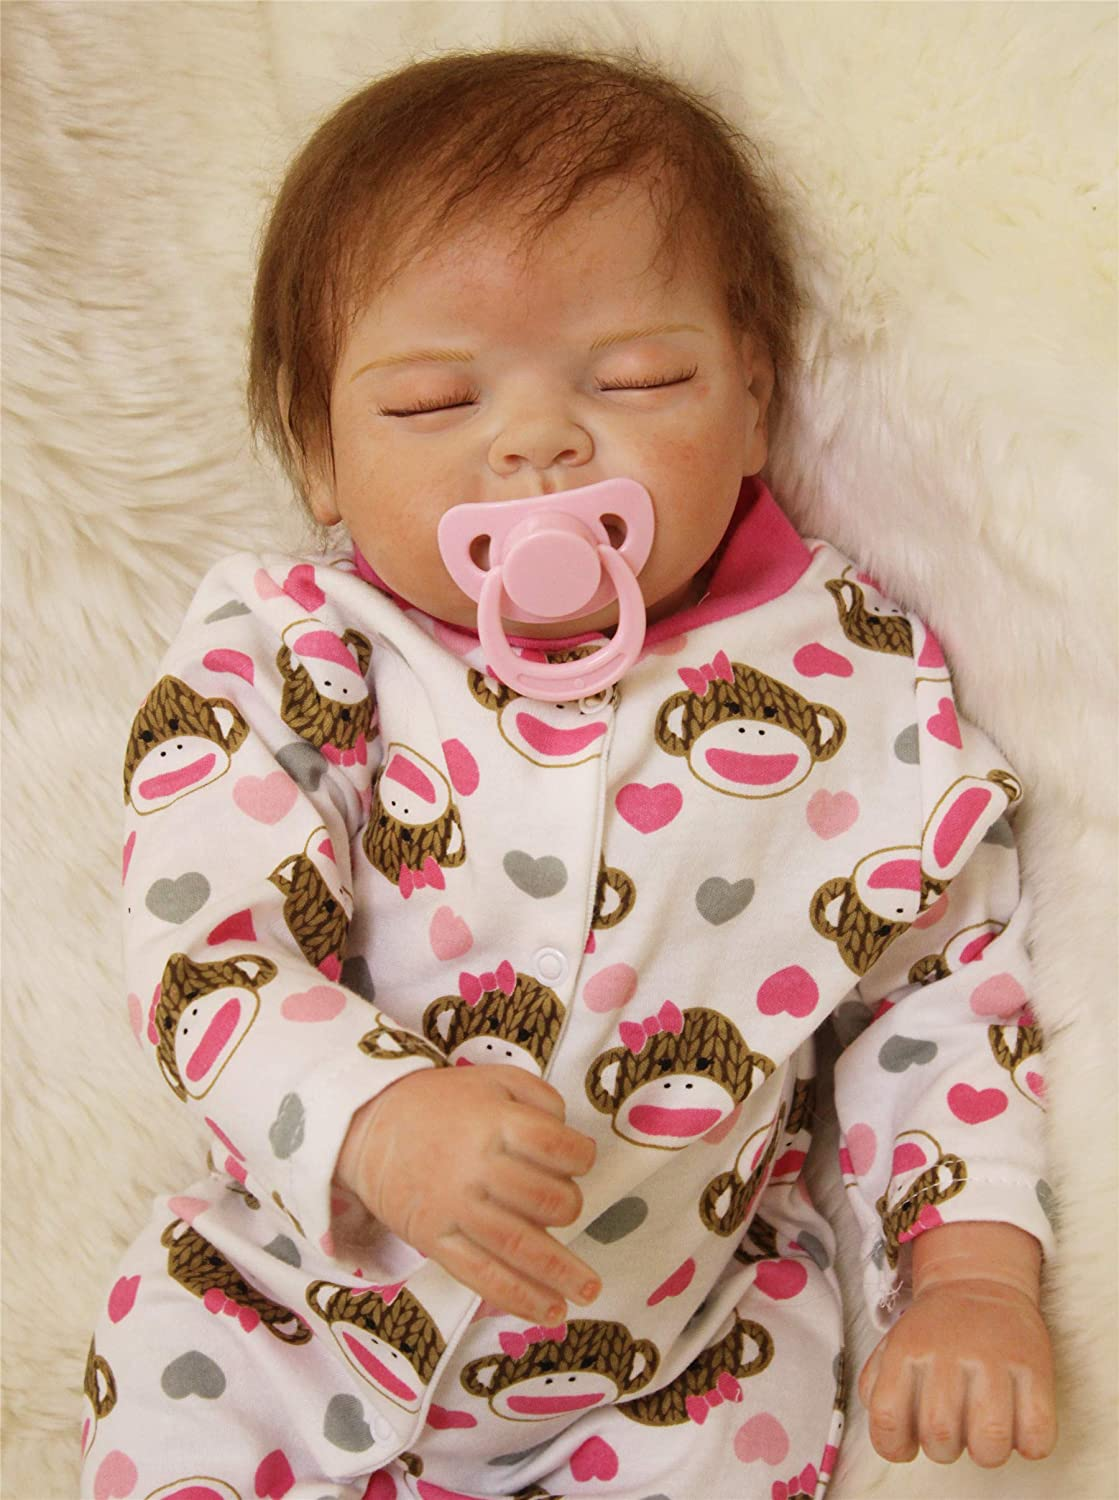 Reborn Baby Doll Girl Sleeping Hot Sale 22 Soft Vinyl Silicone Reborn Doll Realistic Handmade Weighted Doll Cute Children Gifts